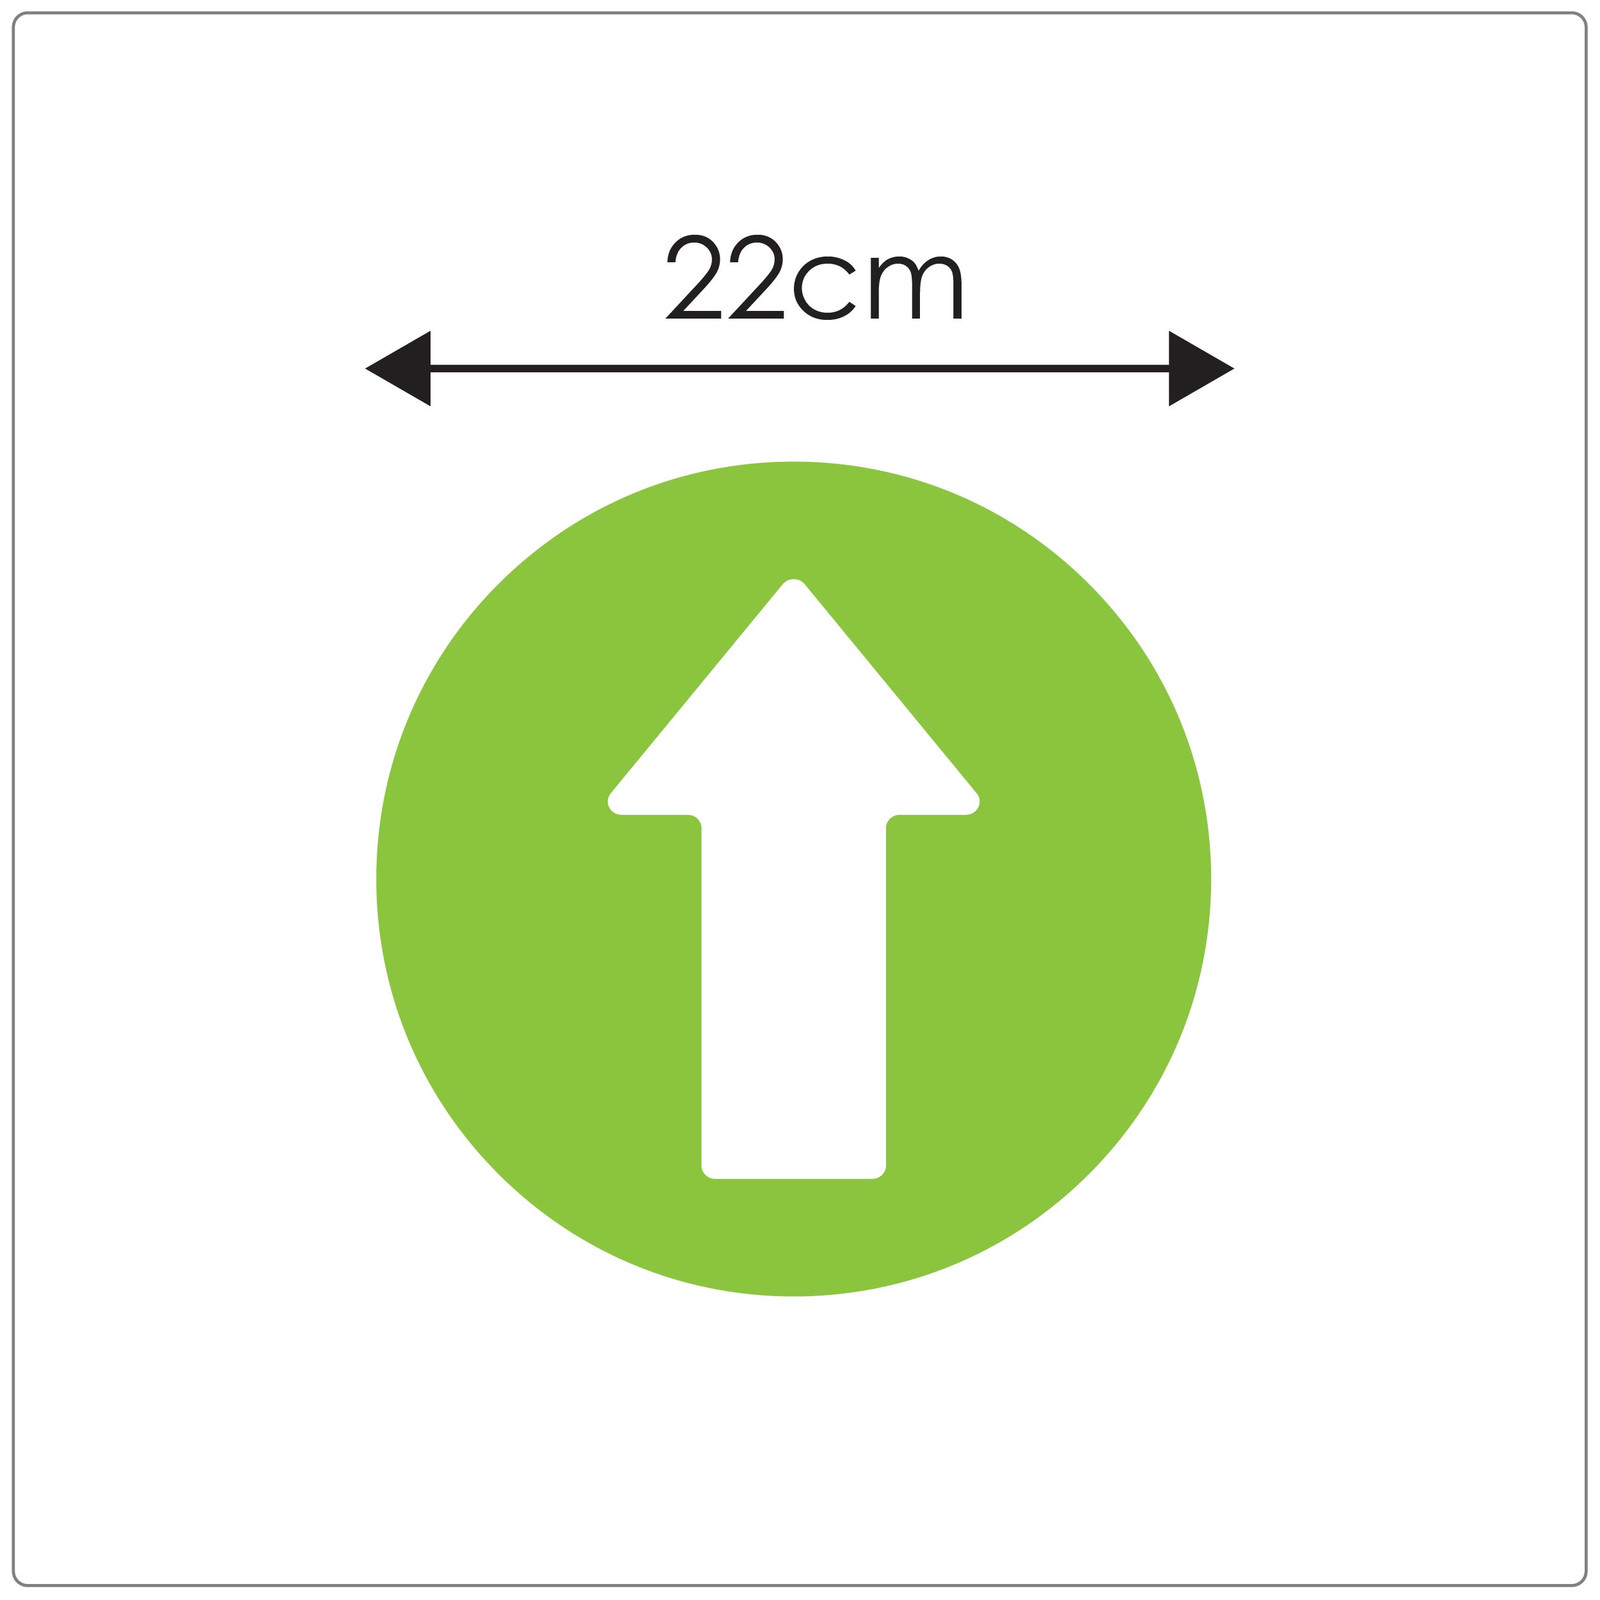 directional arrow social distancing floor sticker for hard floors, sizing, green Self-adhesive Corona virus floor sticker to help with traffic flow